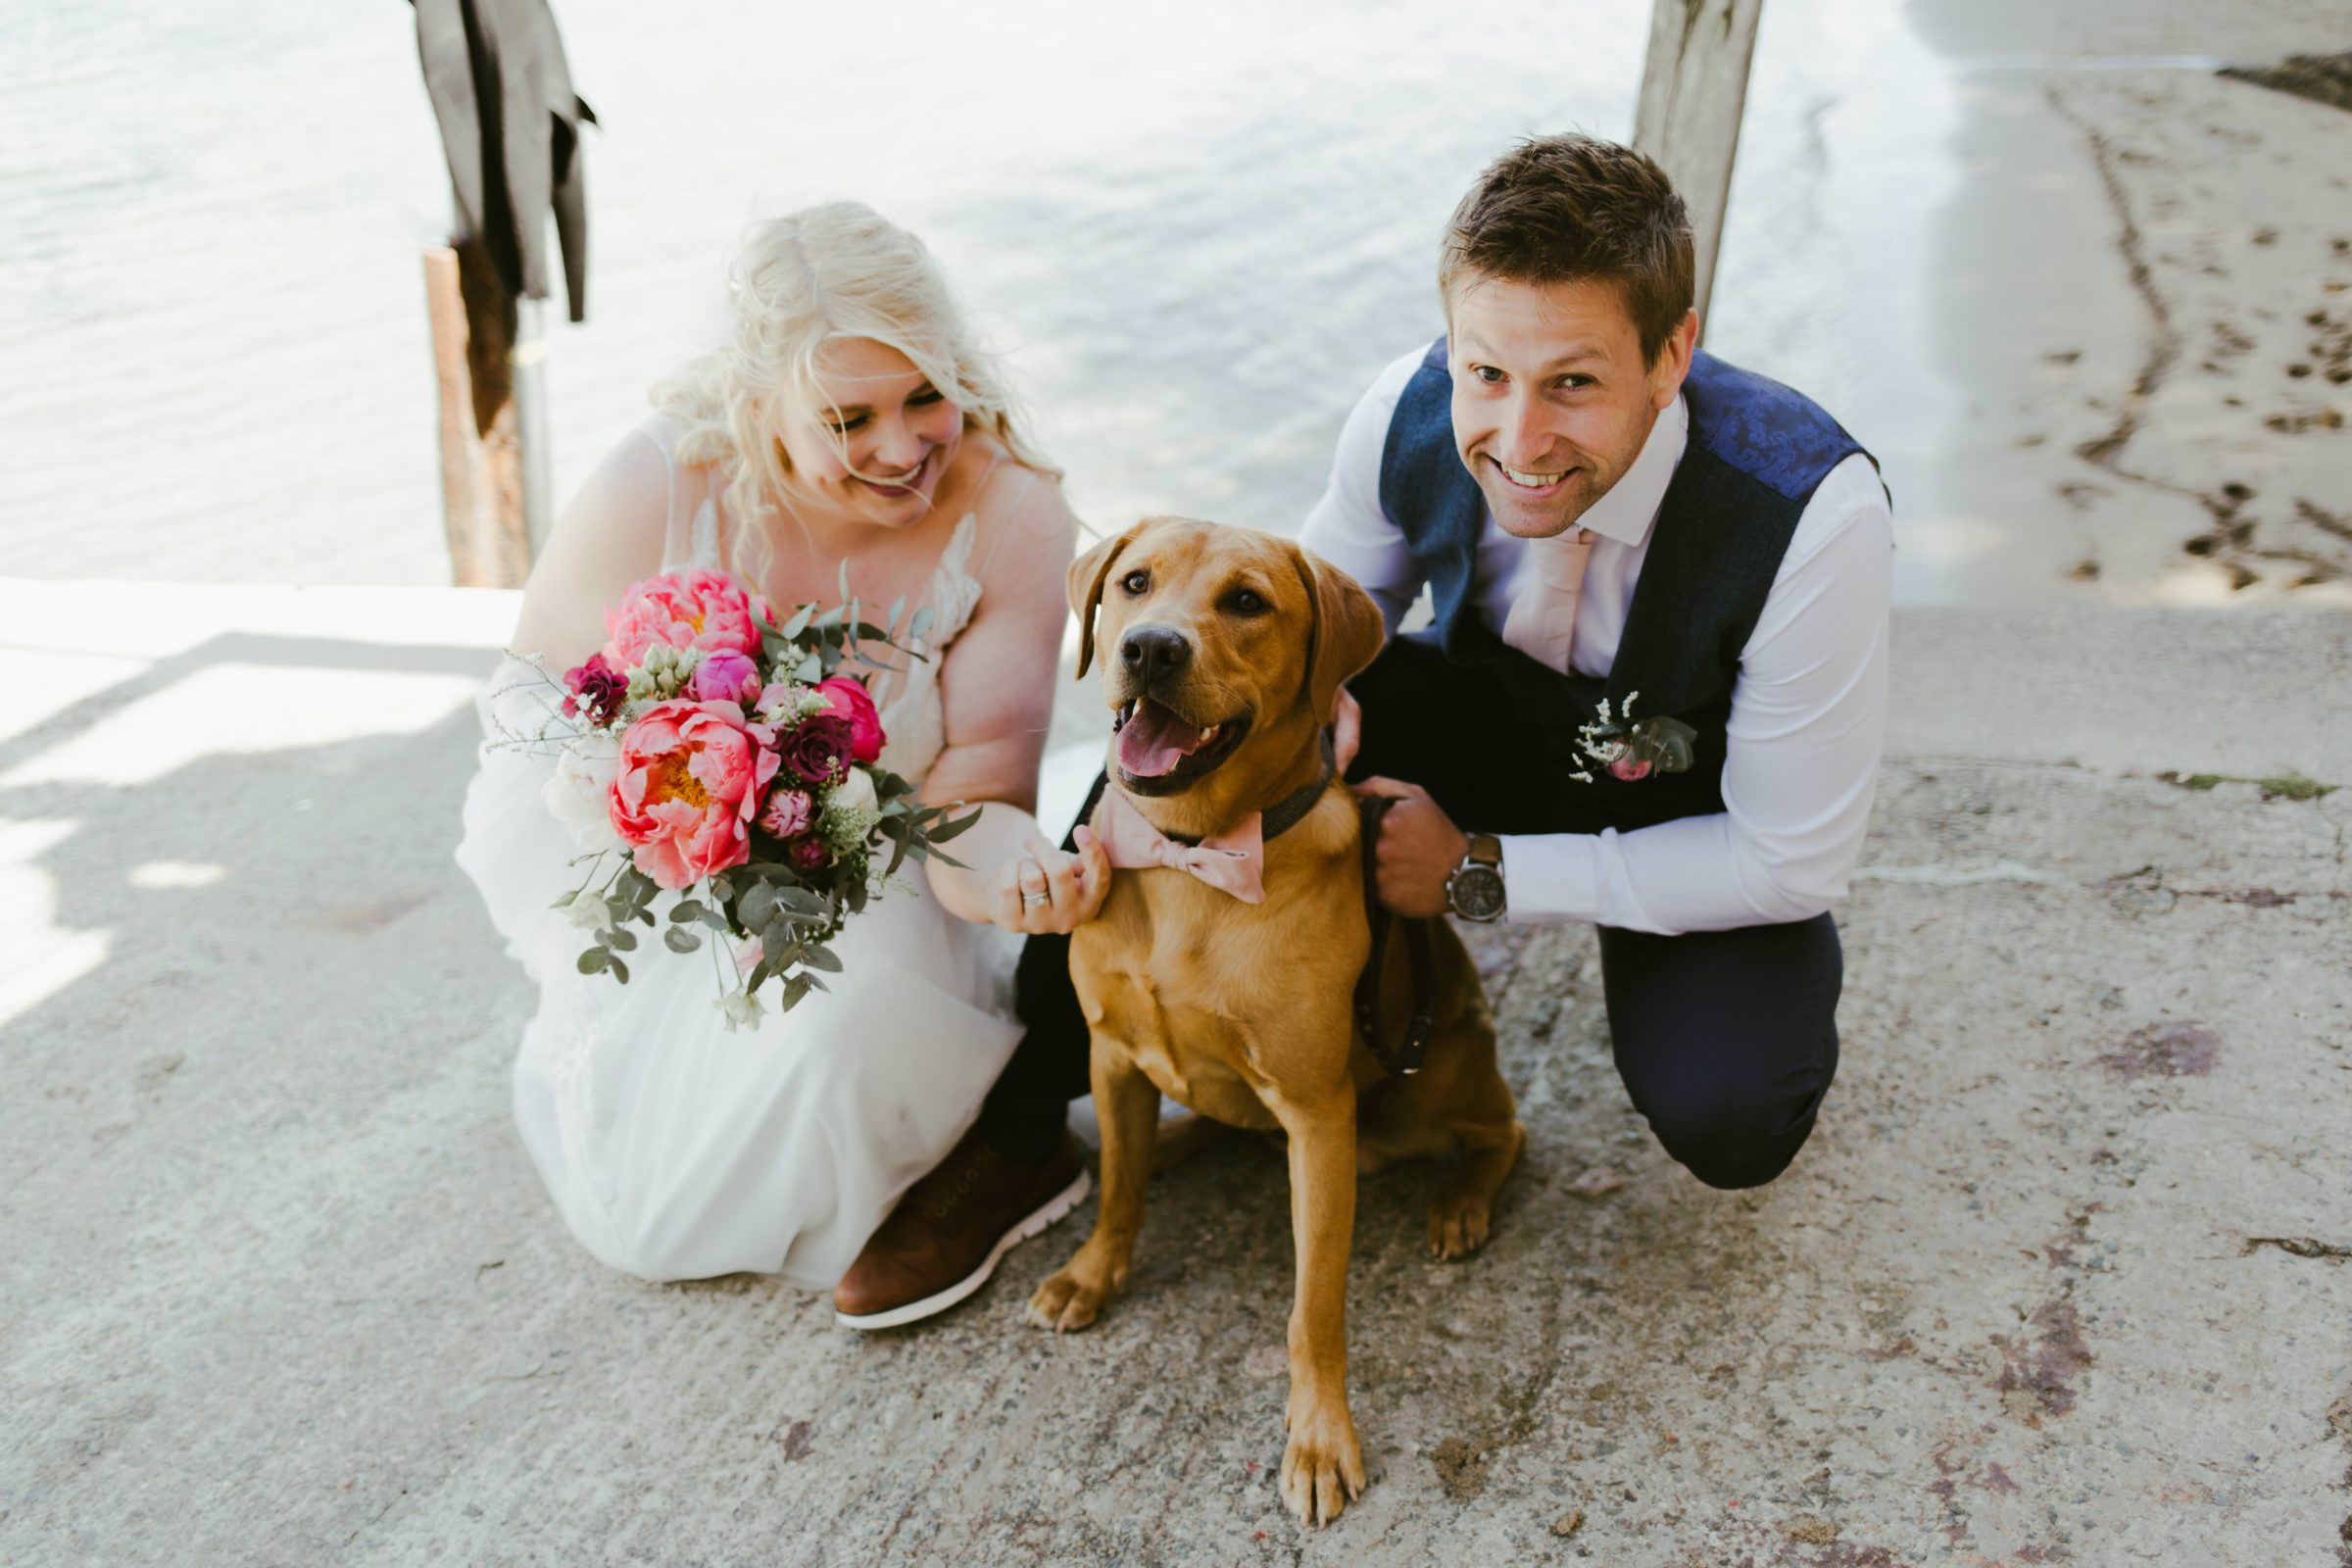 wedding-salcombe-port-waterhouse-venue-bride-groom-dog